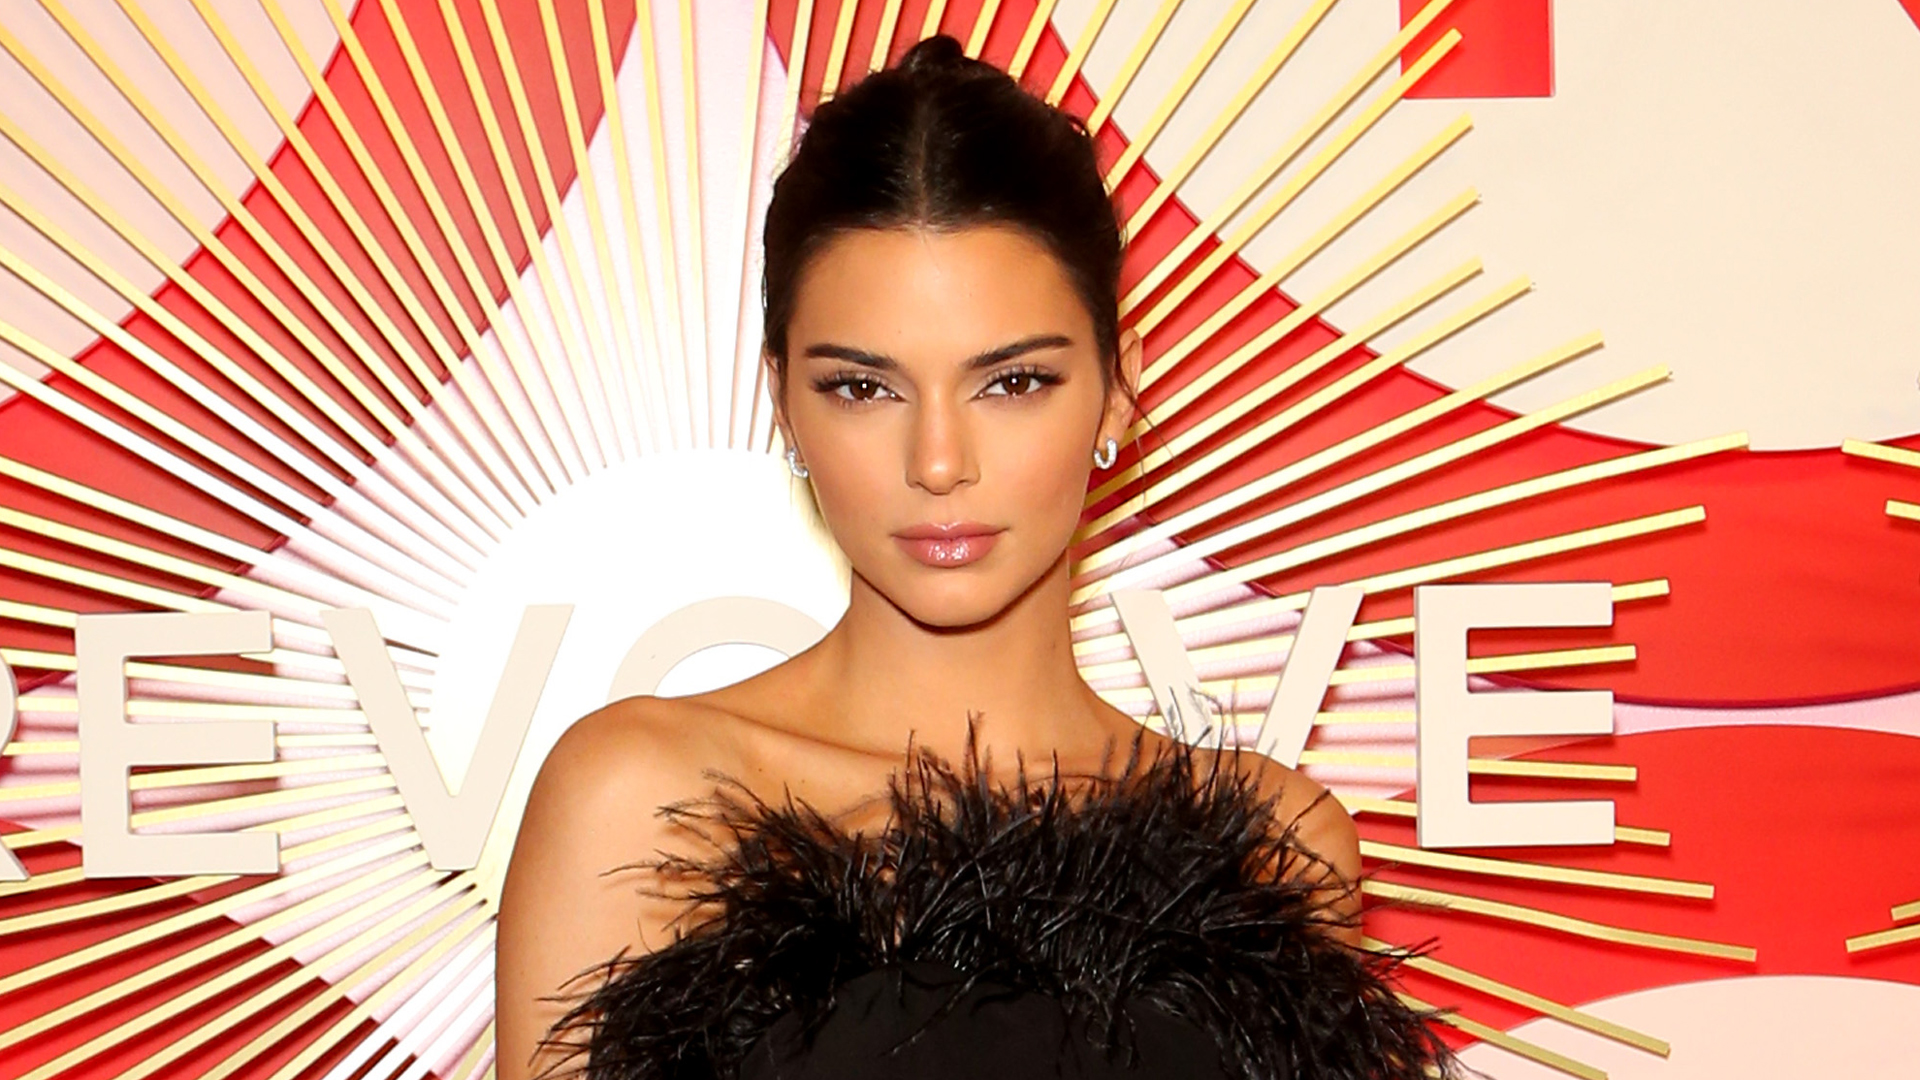 Model and television personality Kendall Jenner attends Revolve's second annual #REVOLVEawards at Palms Casino Resort on Nov 9, 2018 in Las Vegas. (Credit: Gabe Ginsberg/Getty Images)